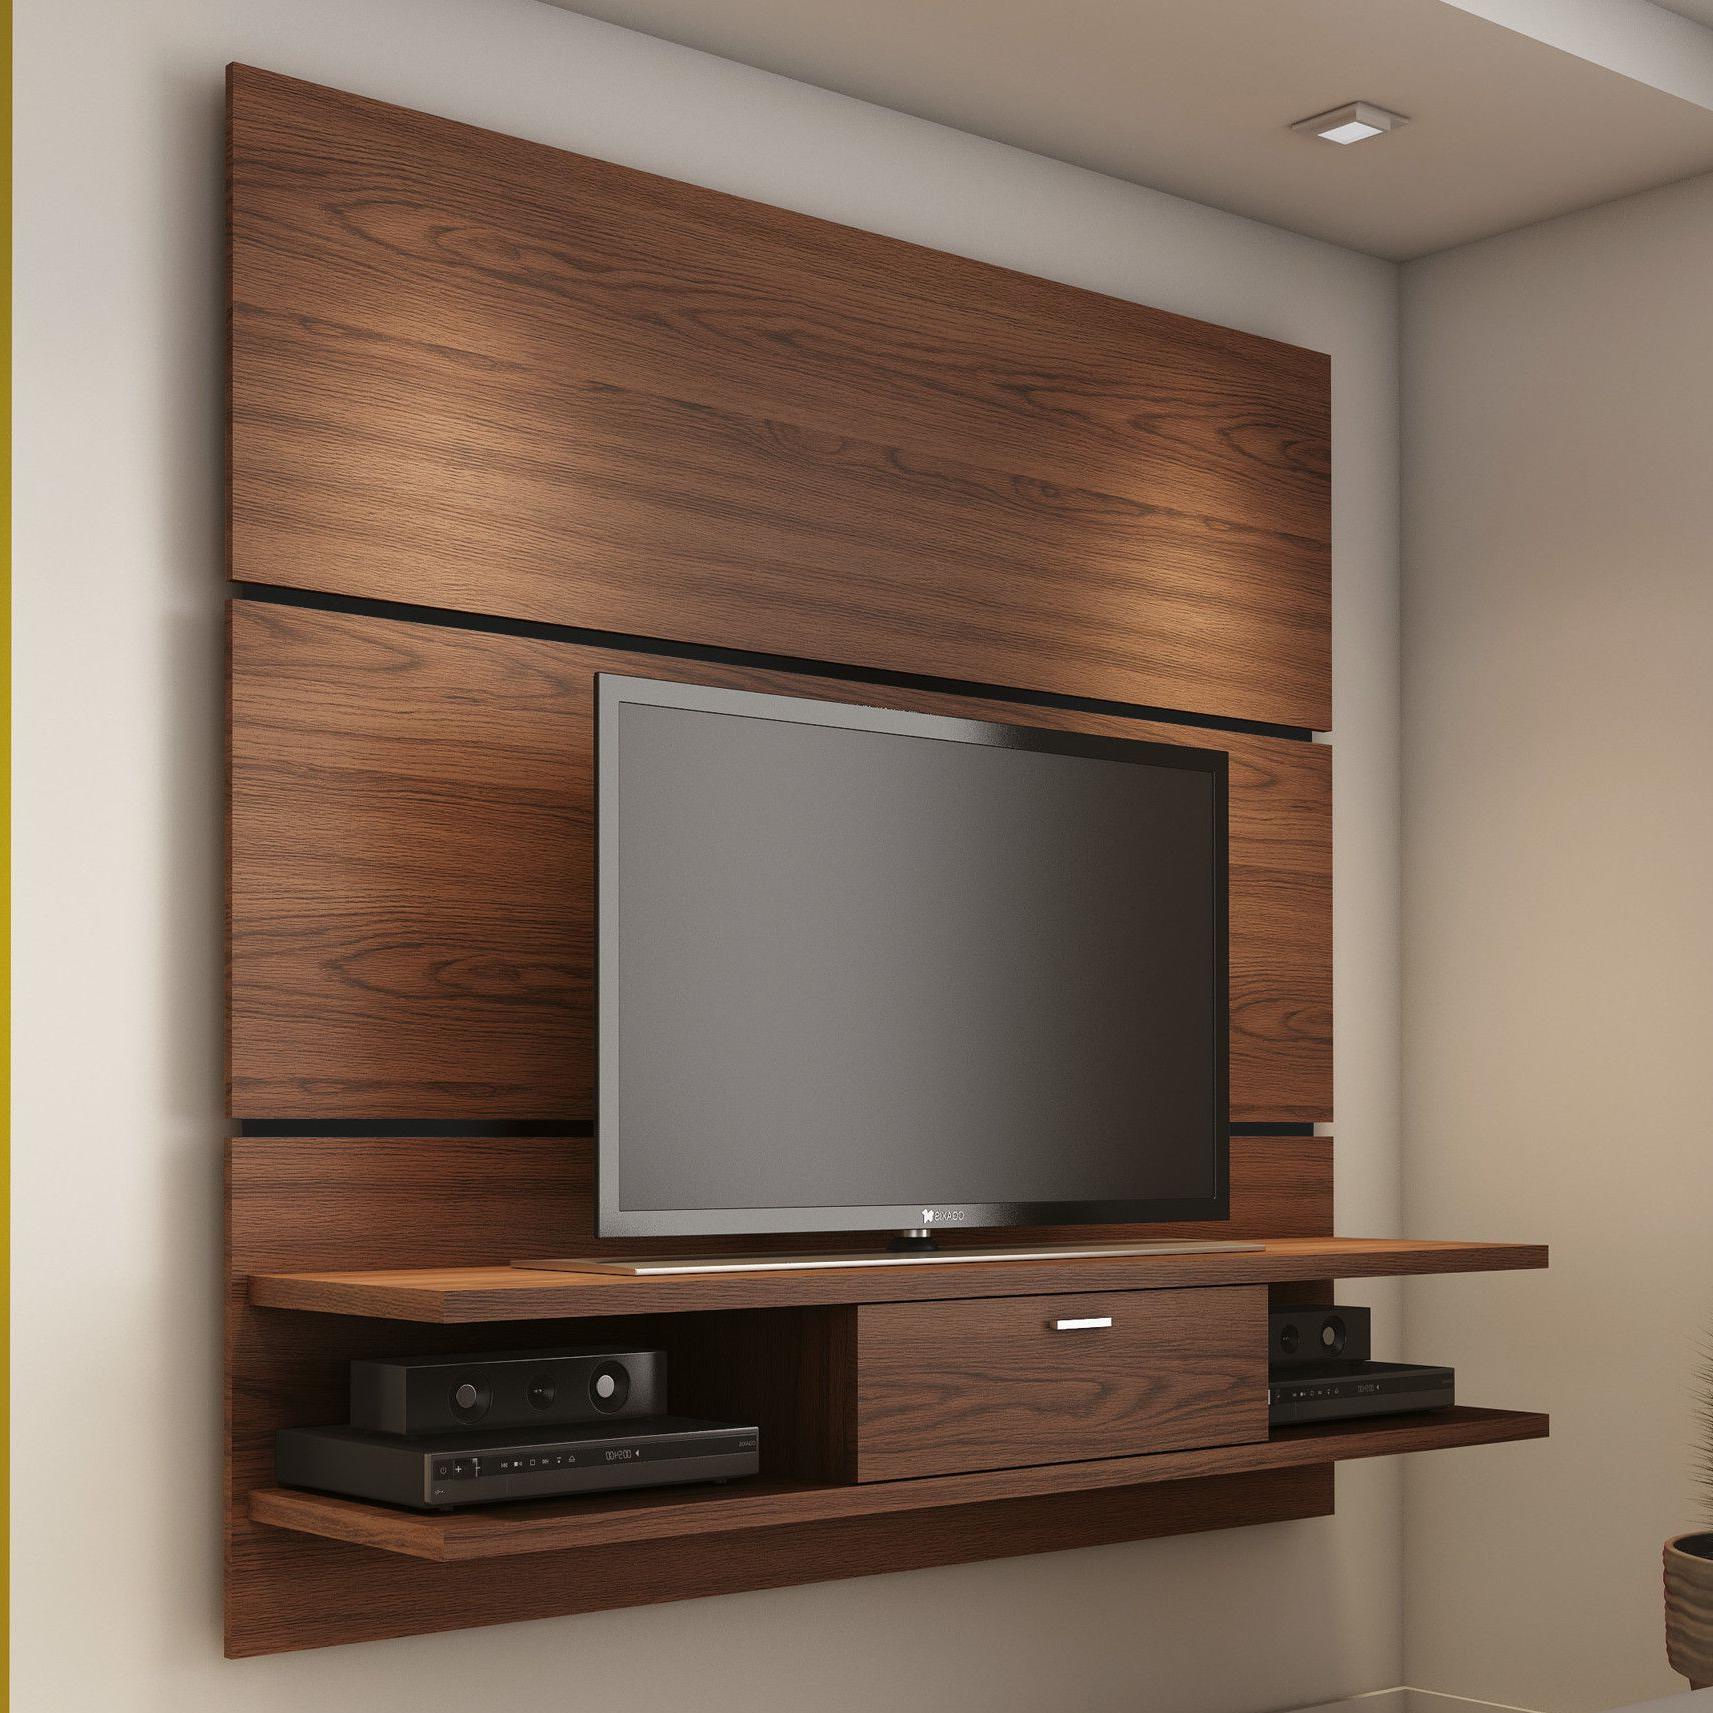 Well Liked Modern Tv Stands With Mount In Tv Stand Ideas Diy Stands For Flat Screens Modern Unit Design Mount (View 20 of 20)